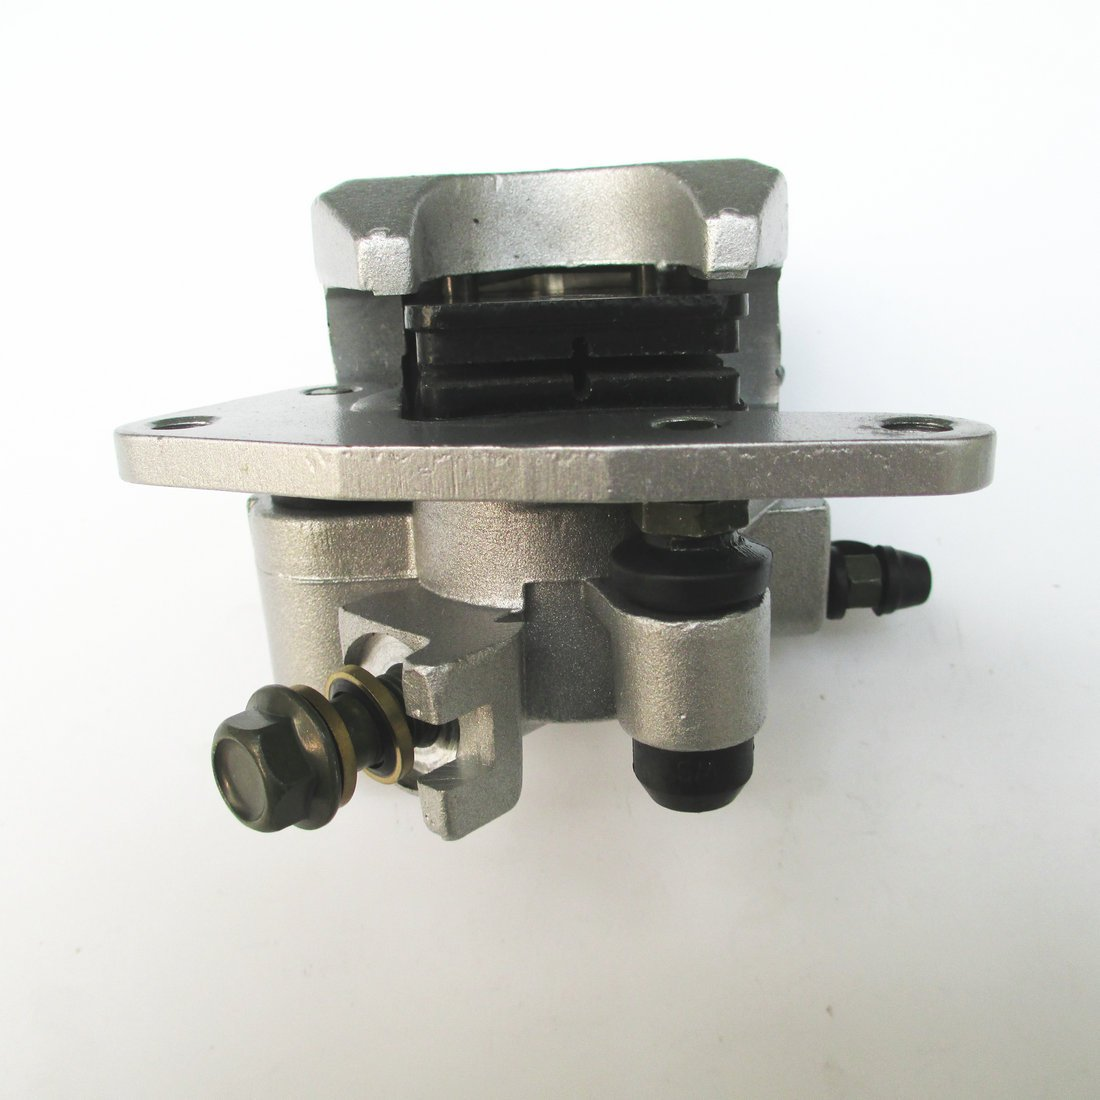 New Front Brake Caliper Set for HONDA TRX 400EX 300EX 250EX SPORTRAX 400 300 250 by Unknown (Image #2)